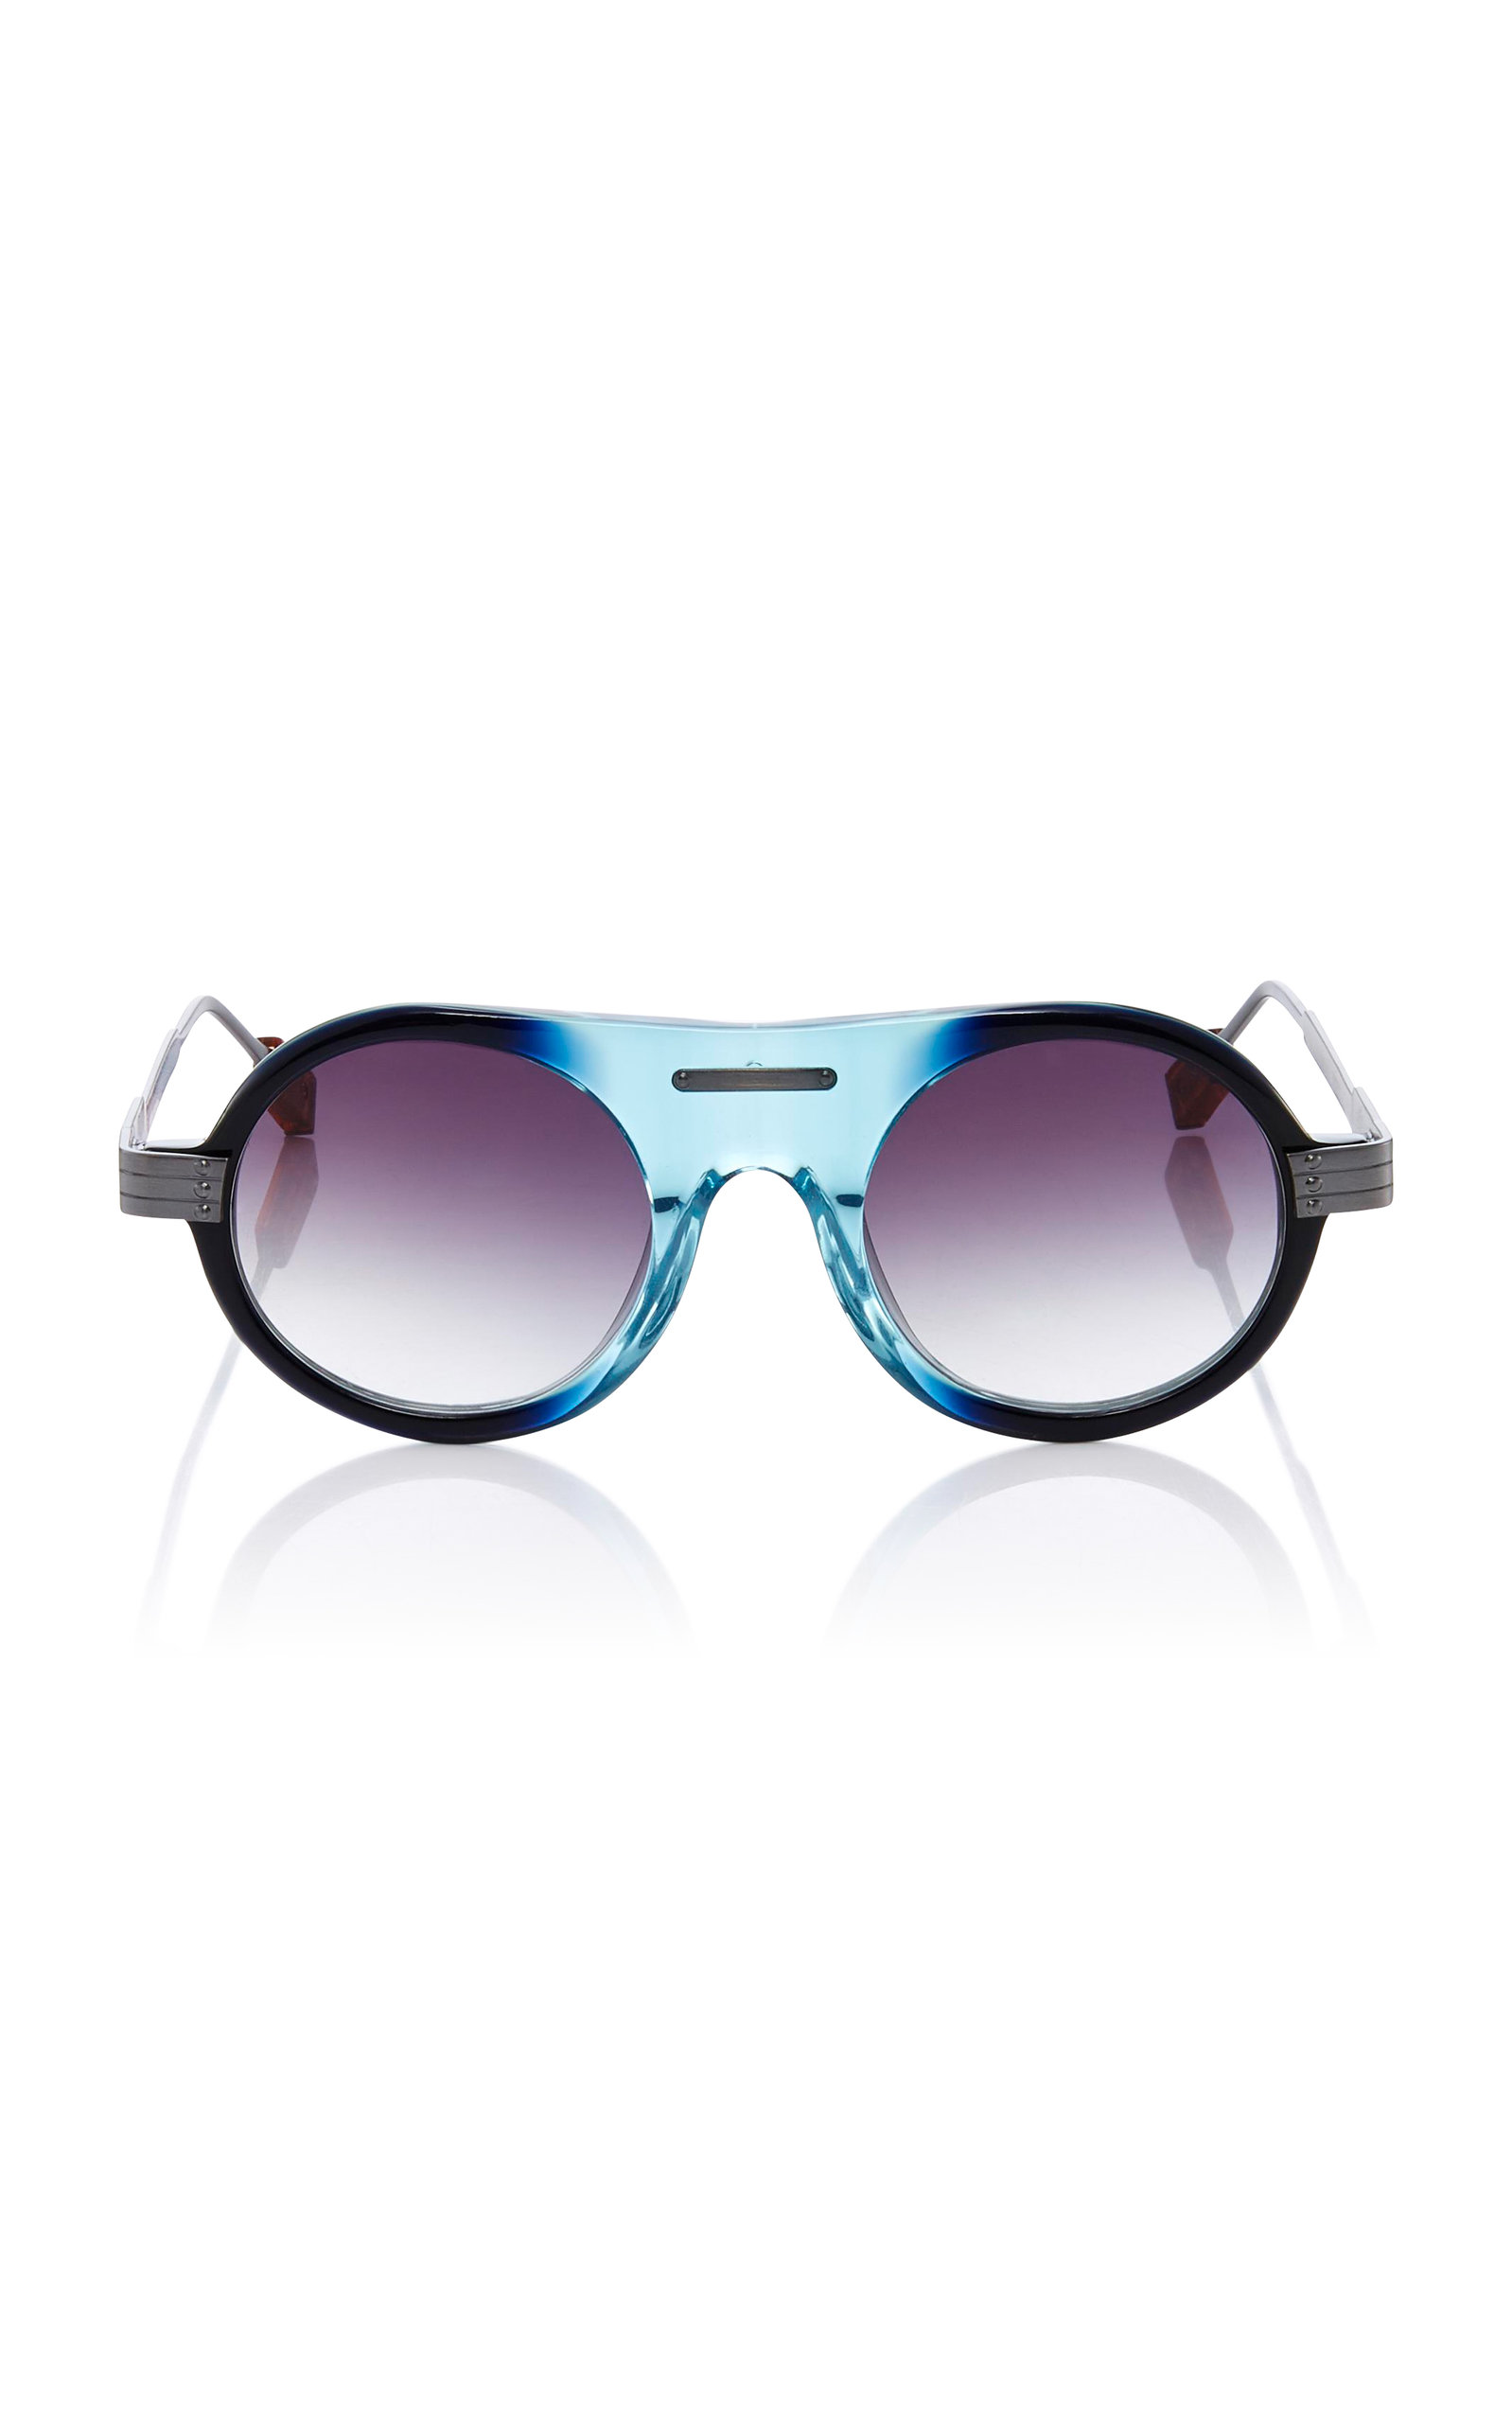 ROSIE ASSOULIN X MORGENTHAL FREDERICS Herbie Round-Frame Sunglasses in Blue